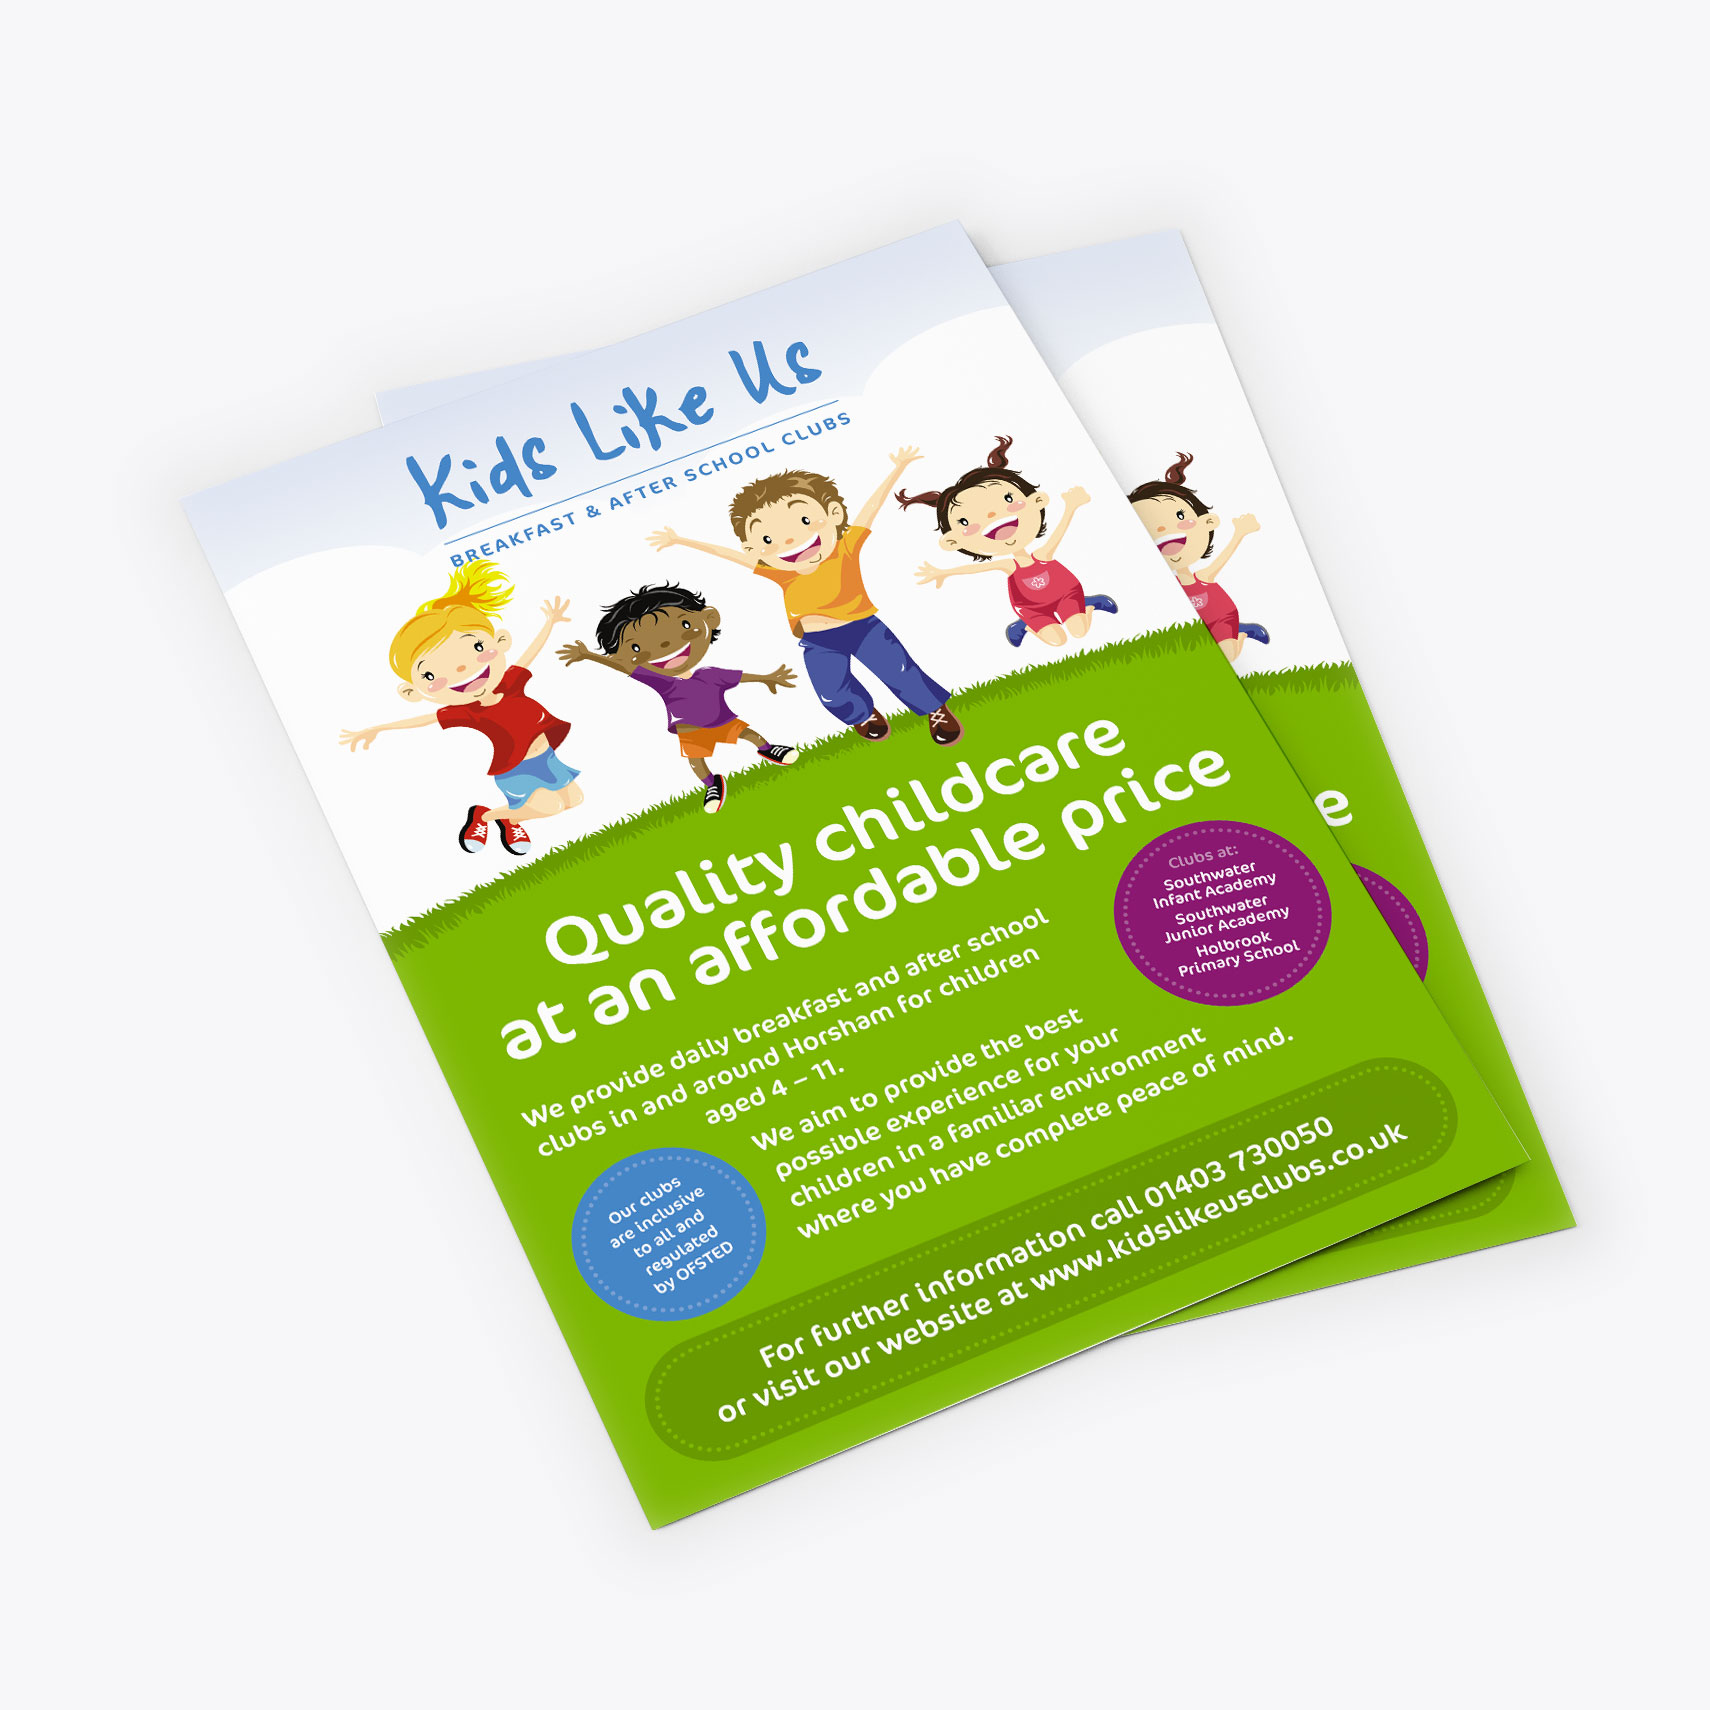 Kids Like Us flyer design